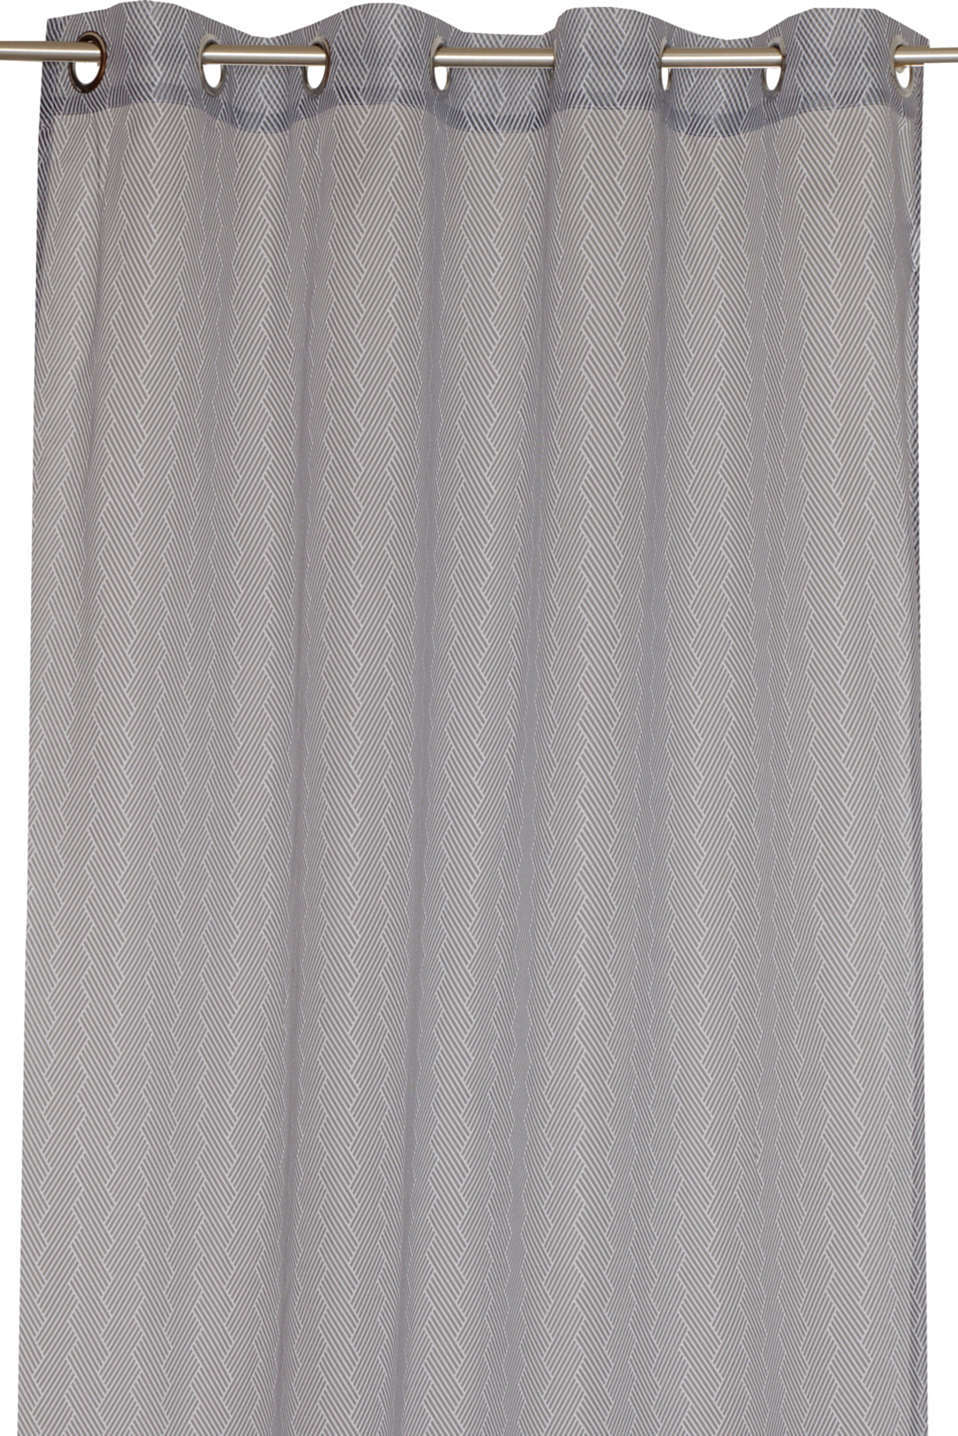 Esprit - Eyelet curtain with a zigzag pattern